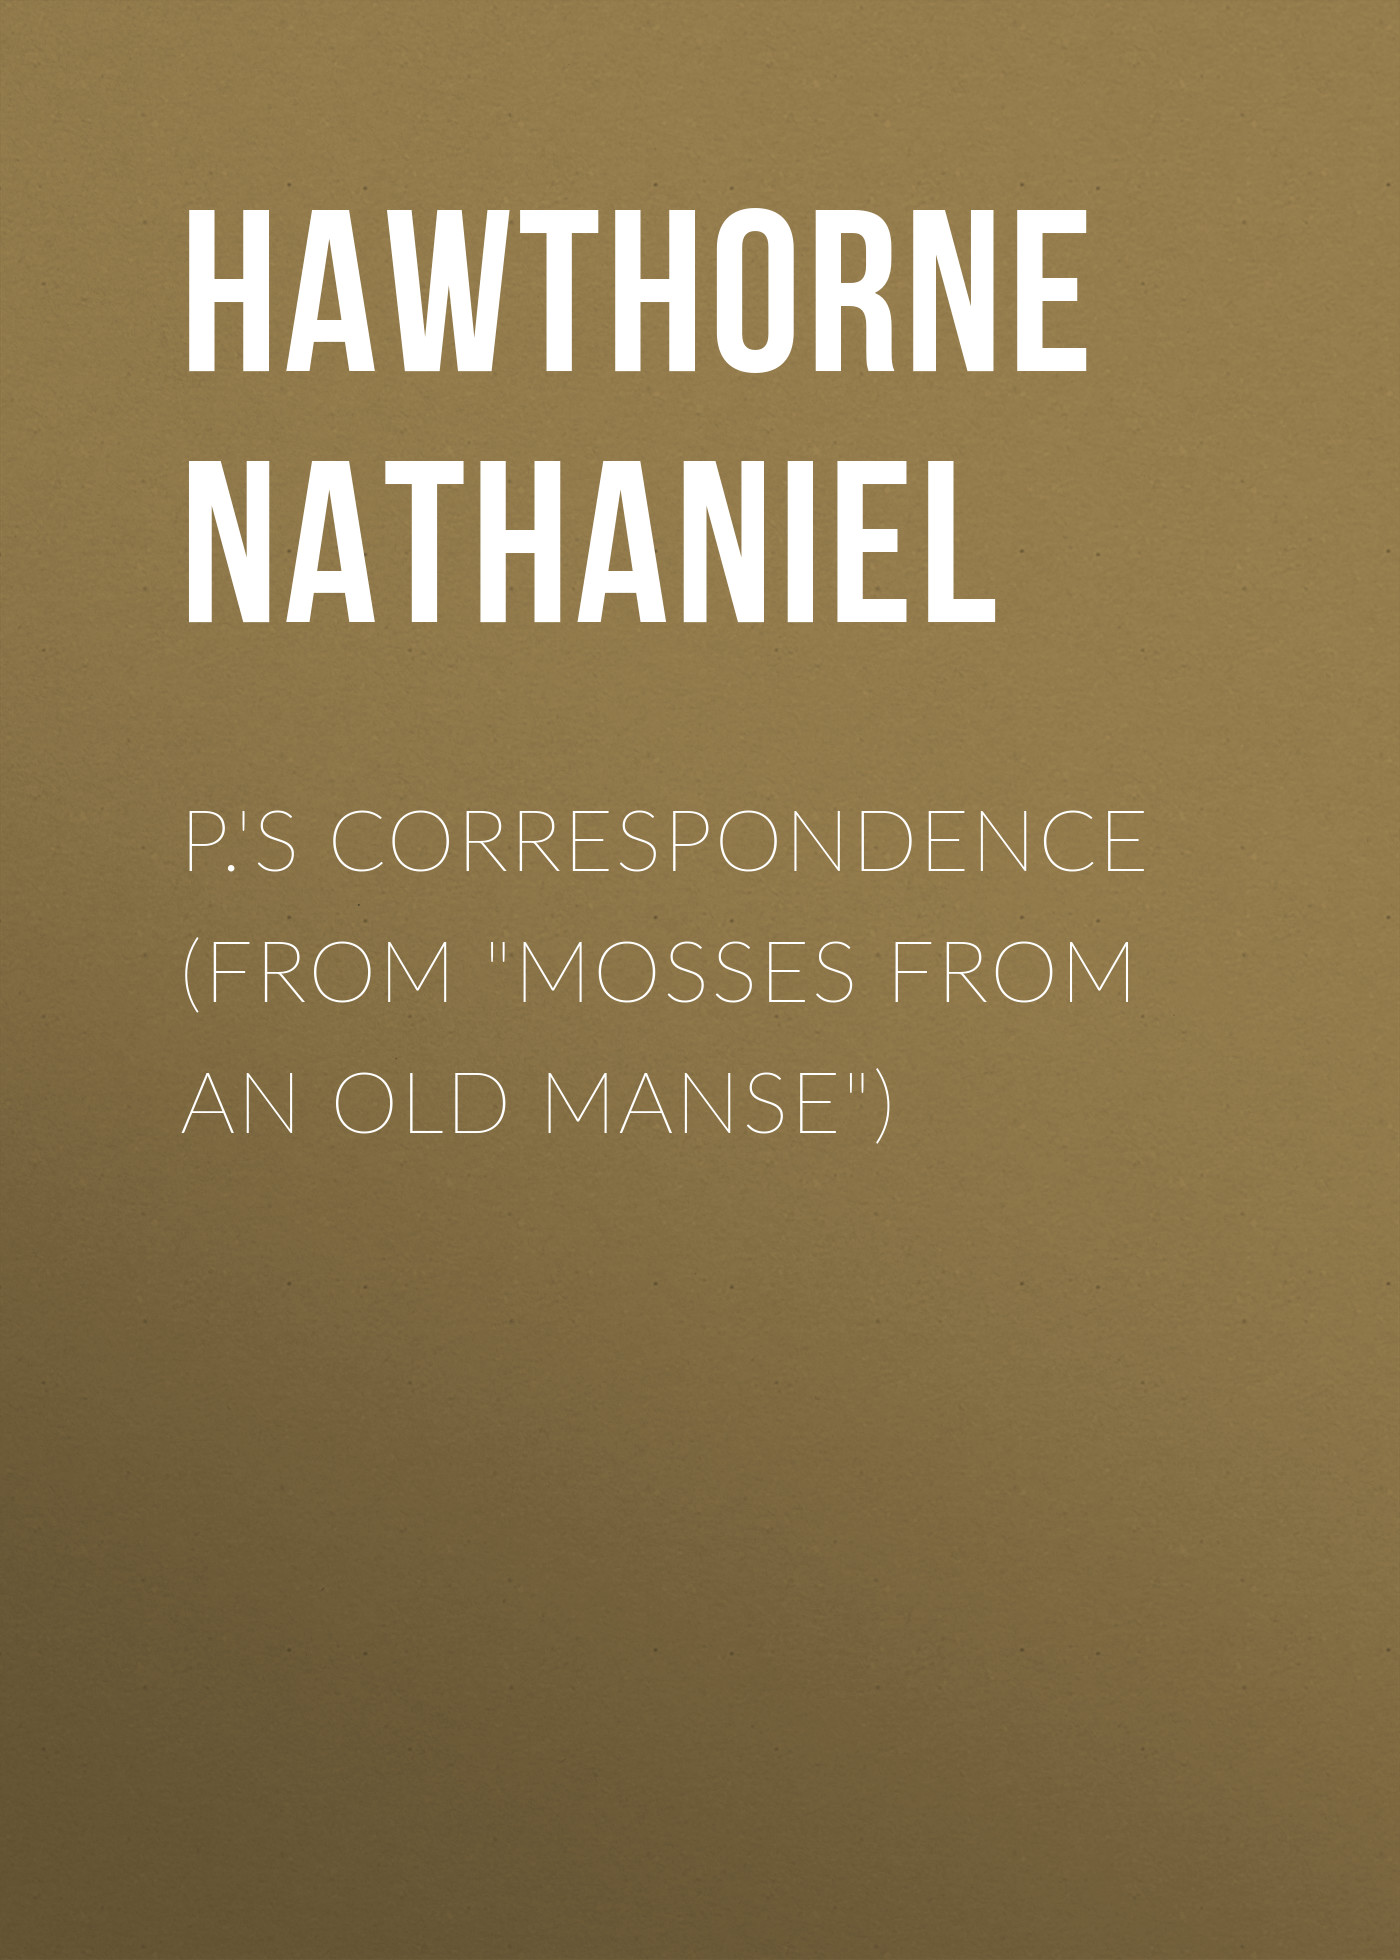 Hawthorne Nathaniel P.'s Correspondence (From Mosses from an Old Manse) hawthorne n mosses from an old manse the blithedale romance